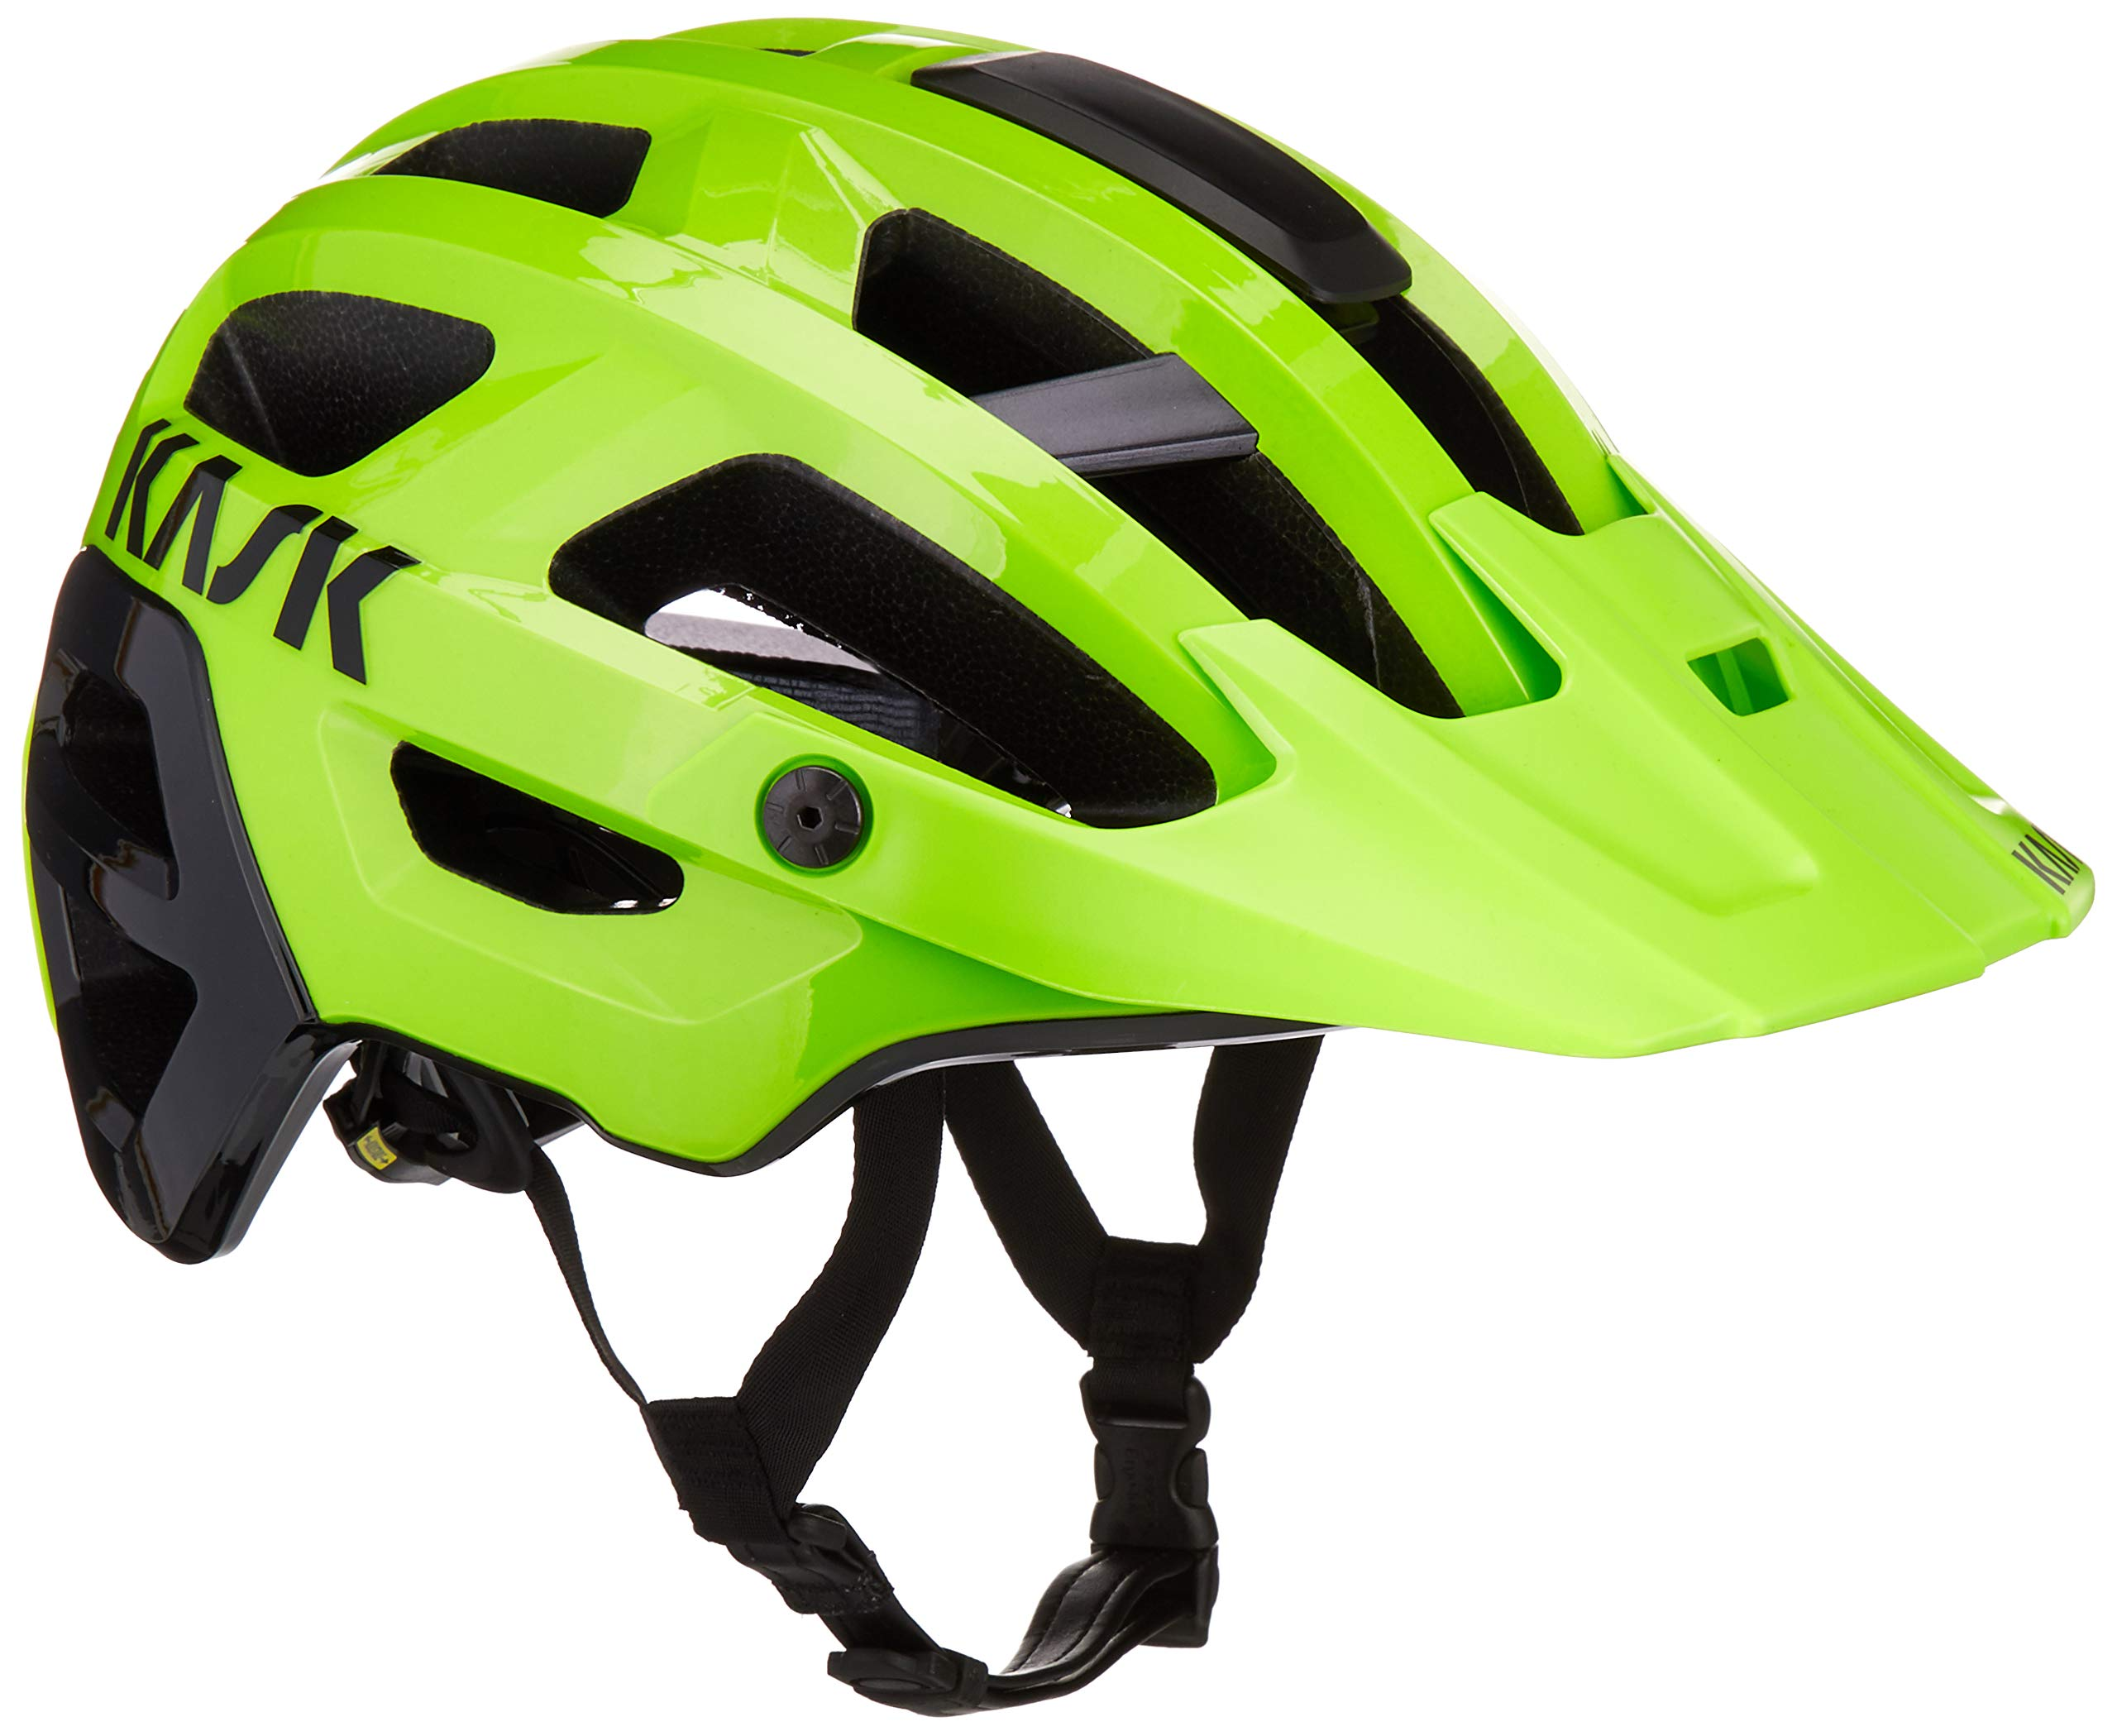 Kask Rex Helmet, Lime, Large by Kask